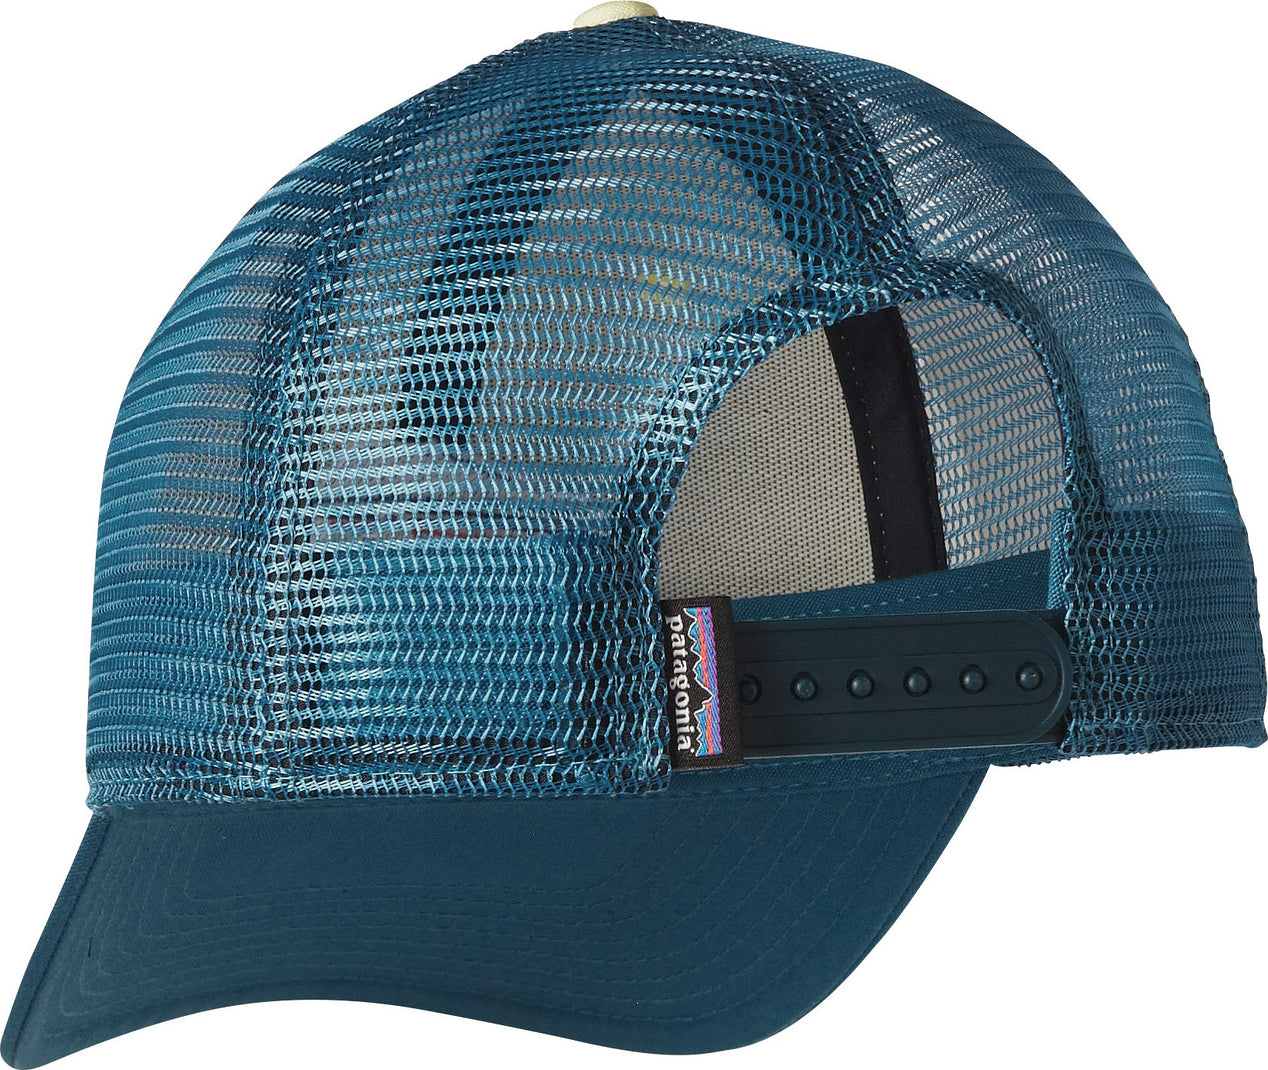 32ed585f Patagonia Fitz Roy Bison Lopro Trucker Hat | Altitude Sports